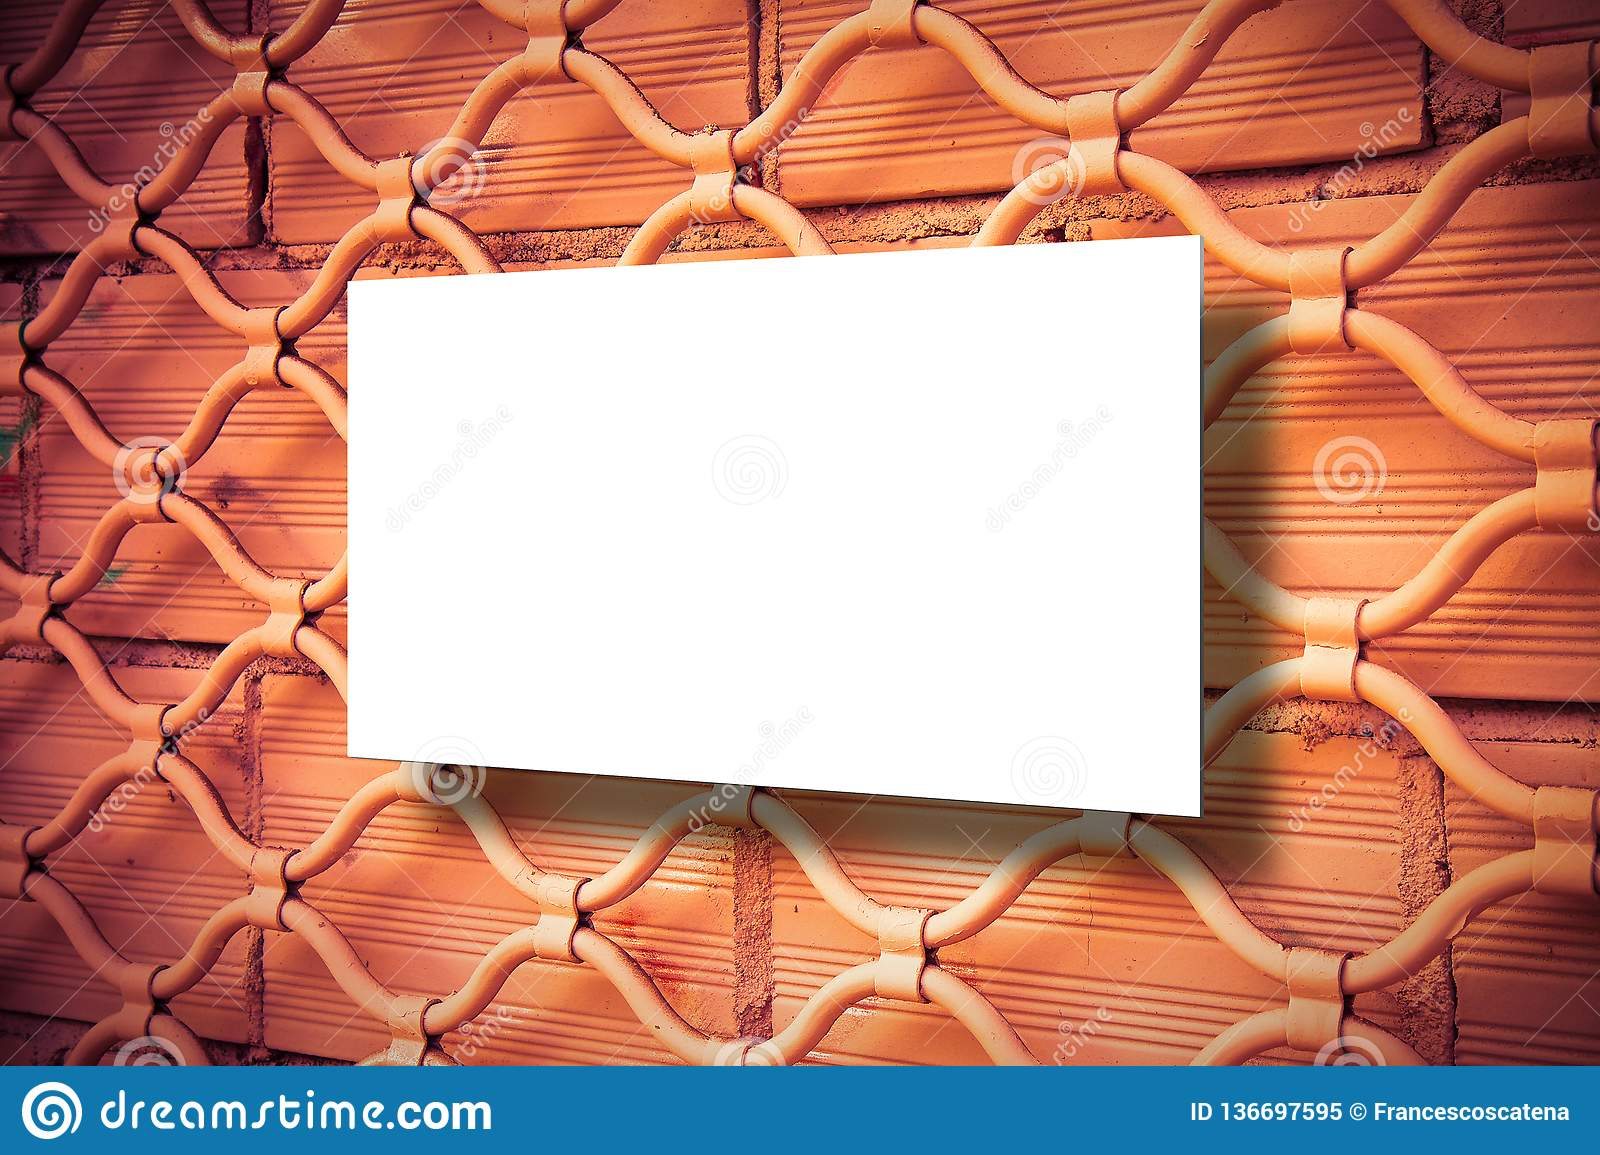 Closed metal gate of a shop after bankruptcy - concept image with blank billboard